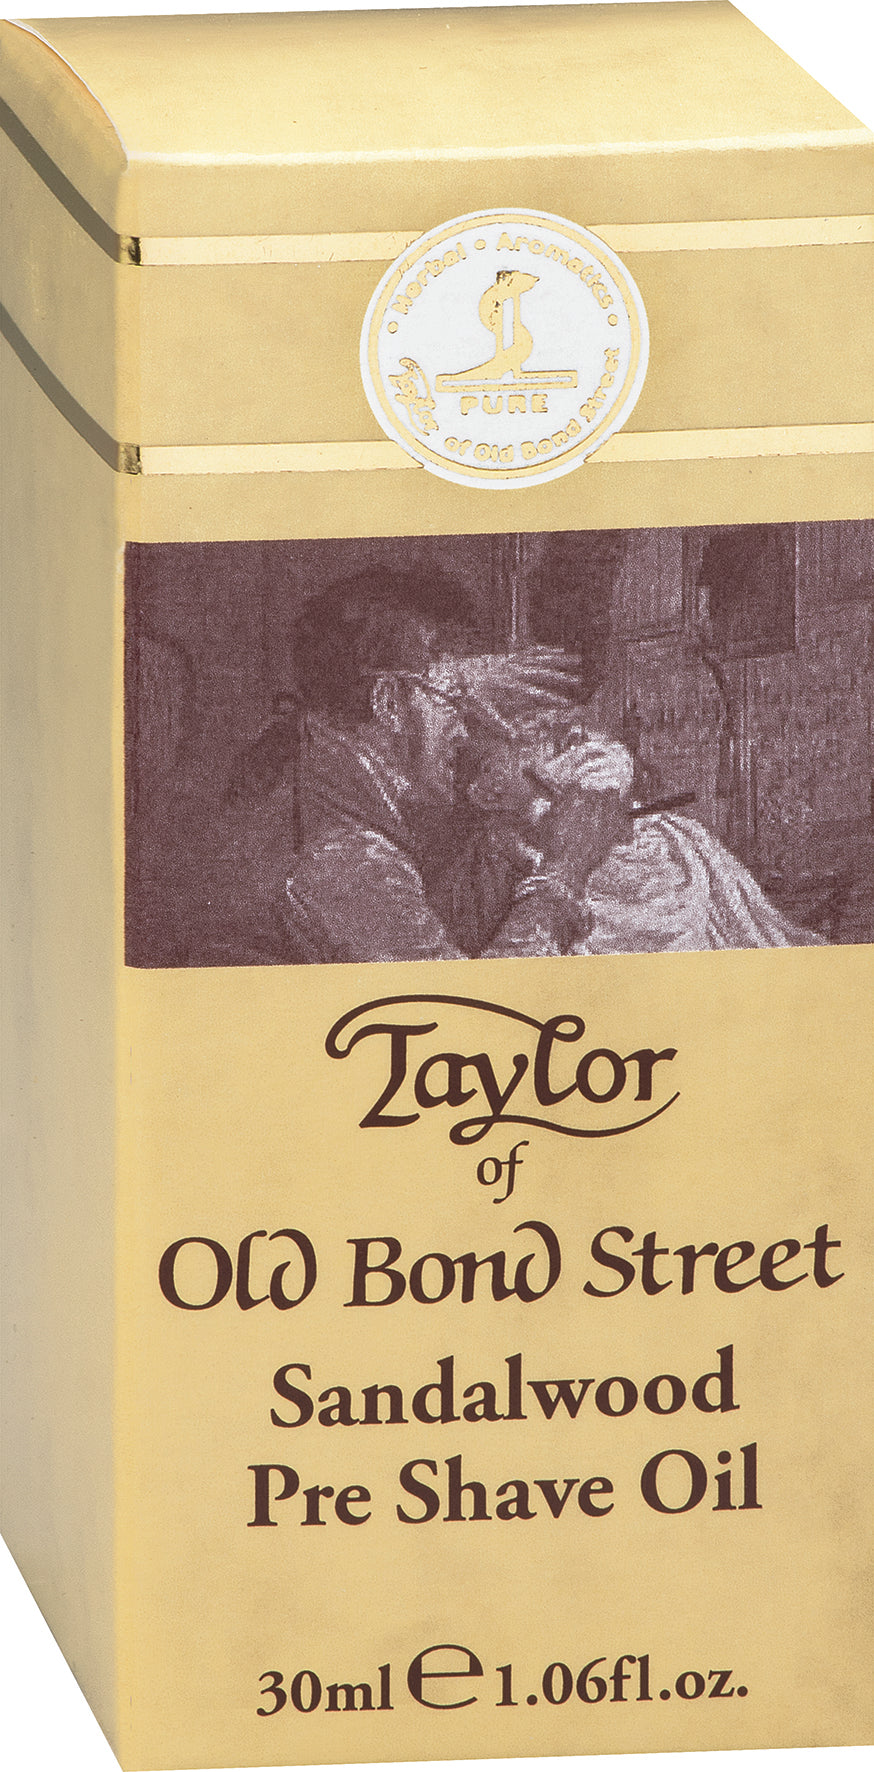 Taylor of Old Bond Street Preshave Oil - Sandelwood